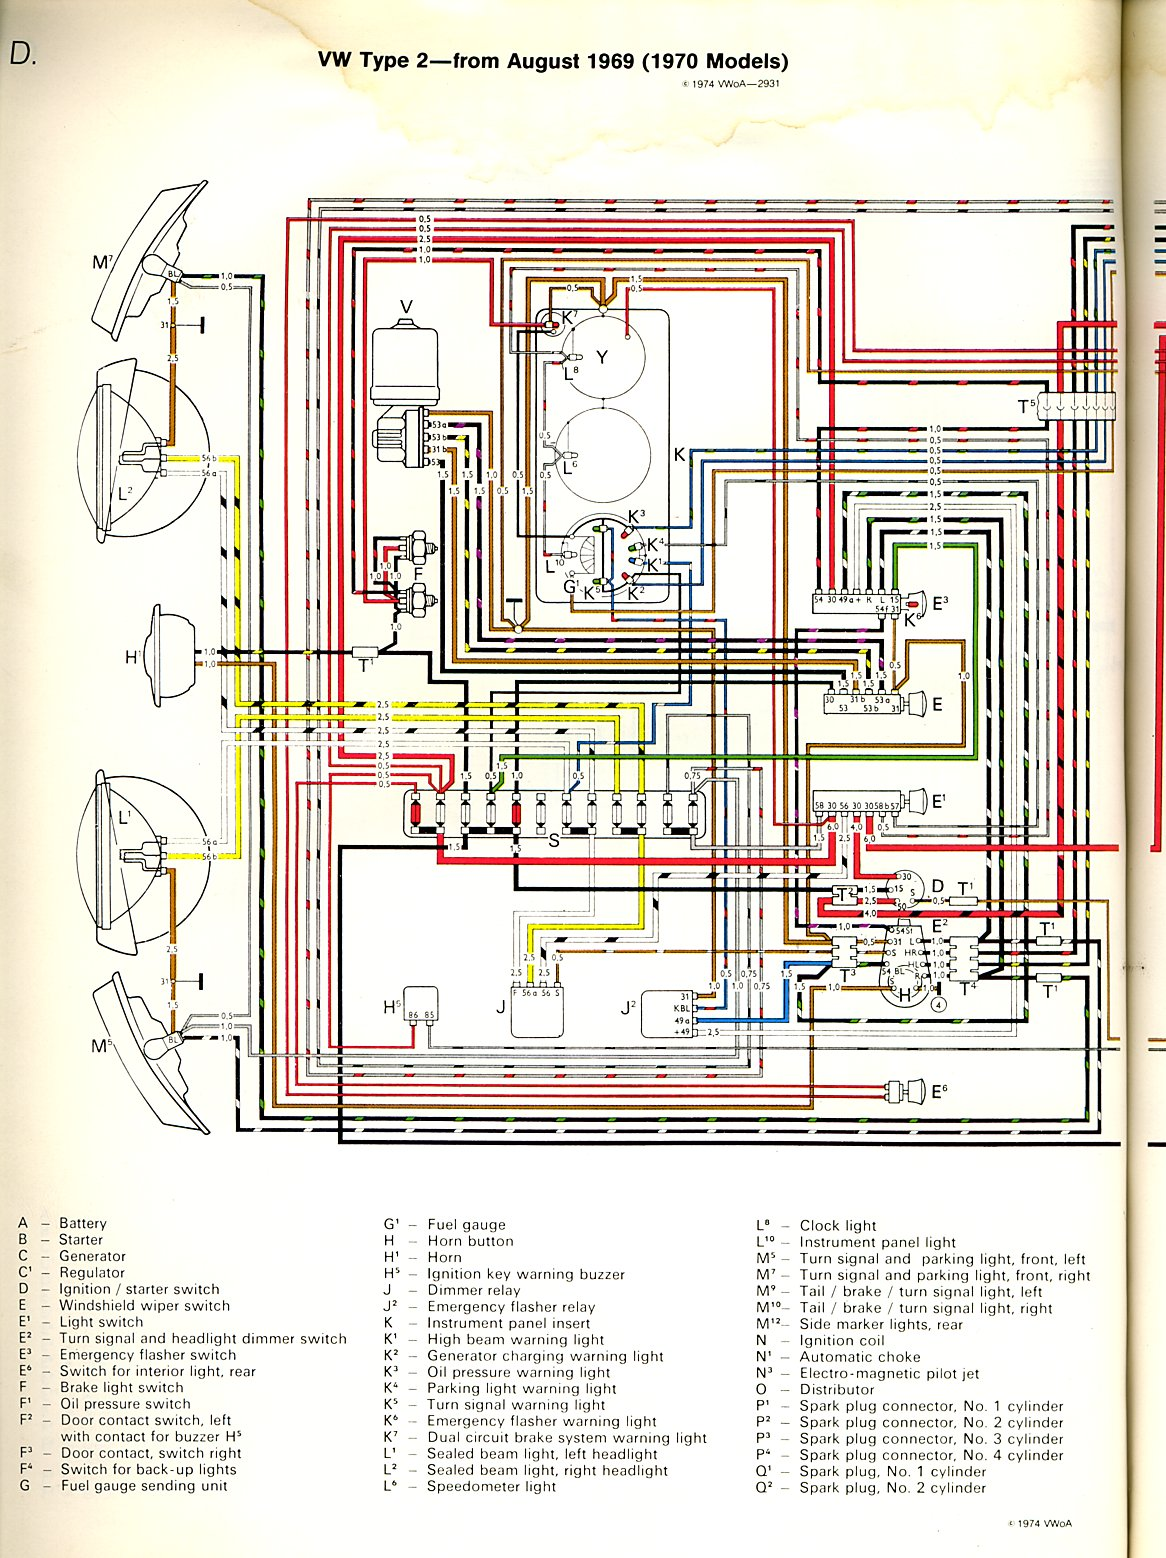 Thesamba Com Type 2 Wiring Diagrams VW Kit Car Wiring Diagram 1970 Vw Bus Wiring  Diagram